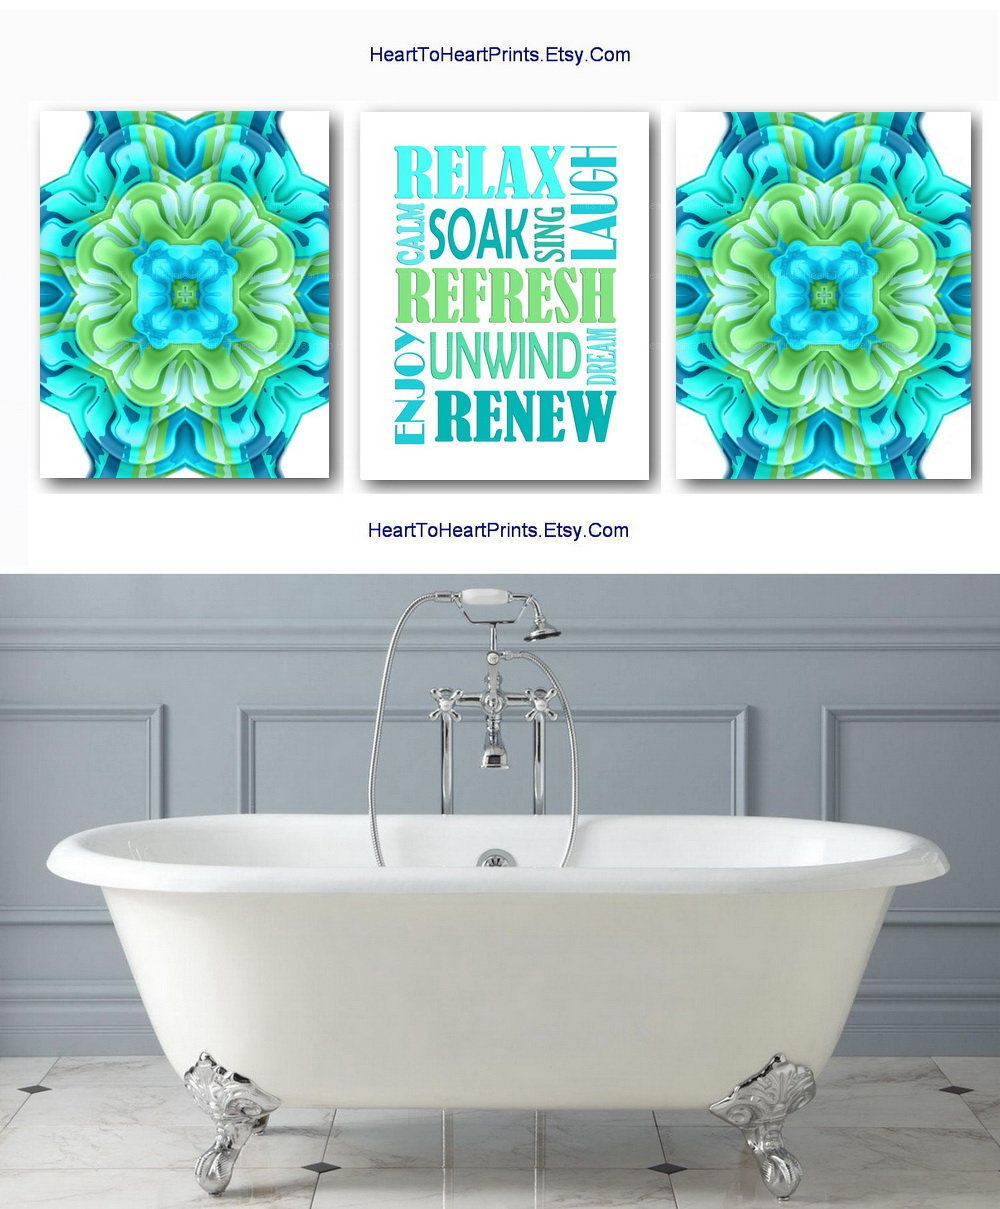 Bathroom Set Of 3 Prints Bathroom Wall Decor Lime Teal Turquoise Green Bathroom Wall Art Bath Quote Downloa Bath Wall Art Bathroom Art Prints Bathroom Wall Art